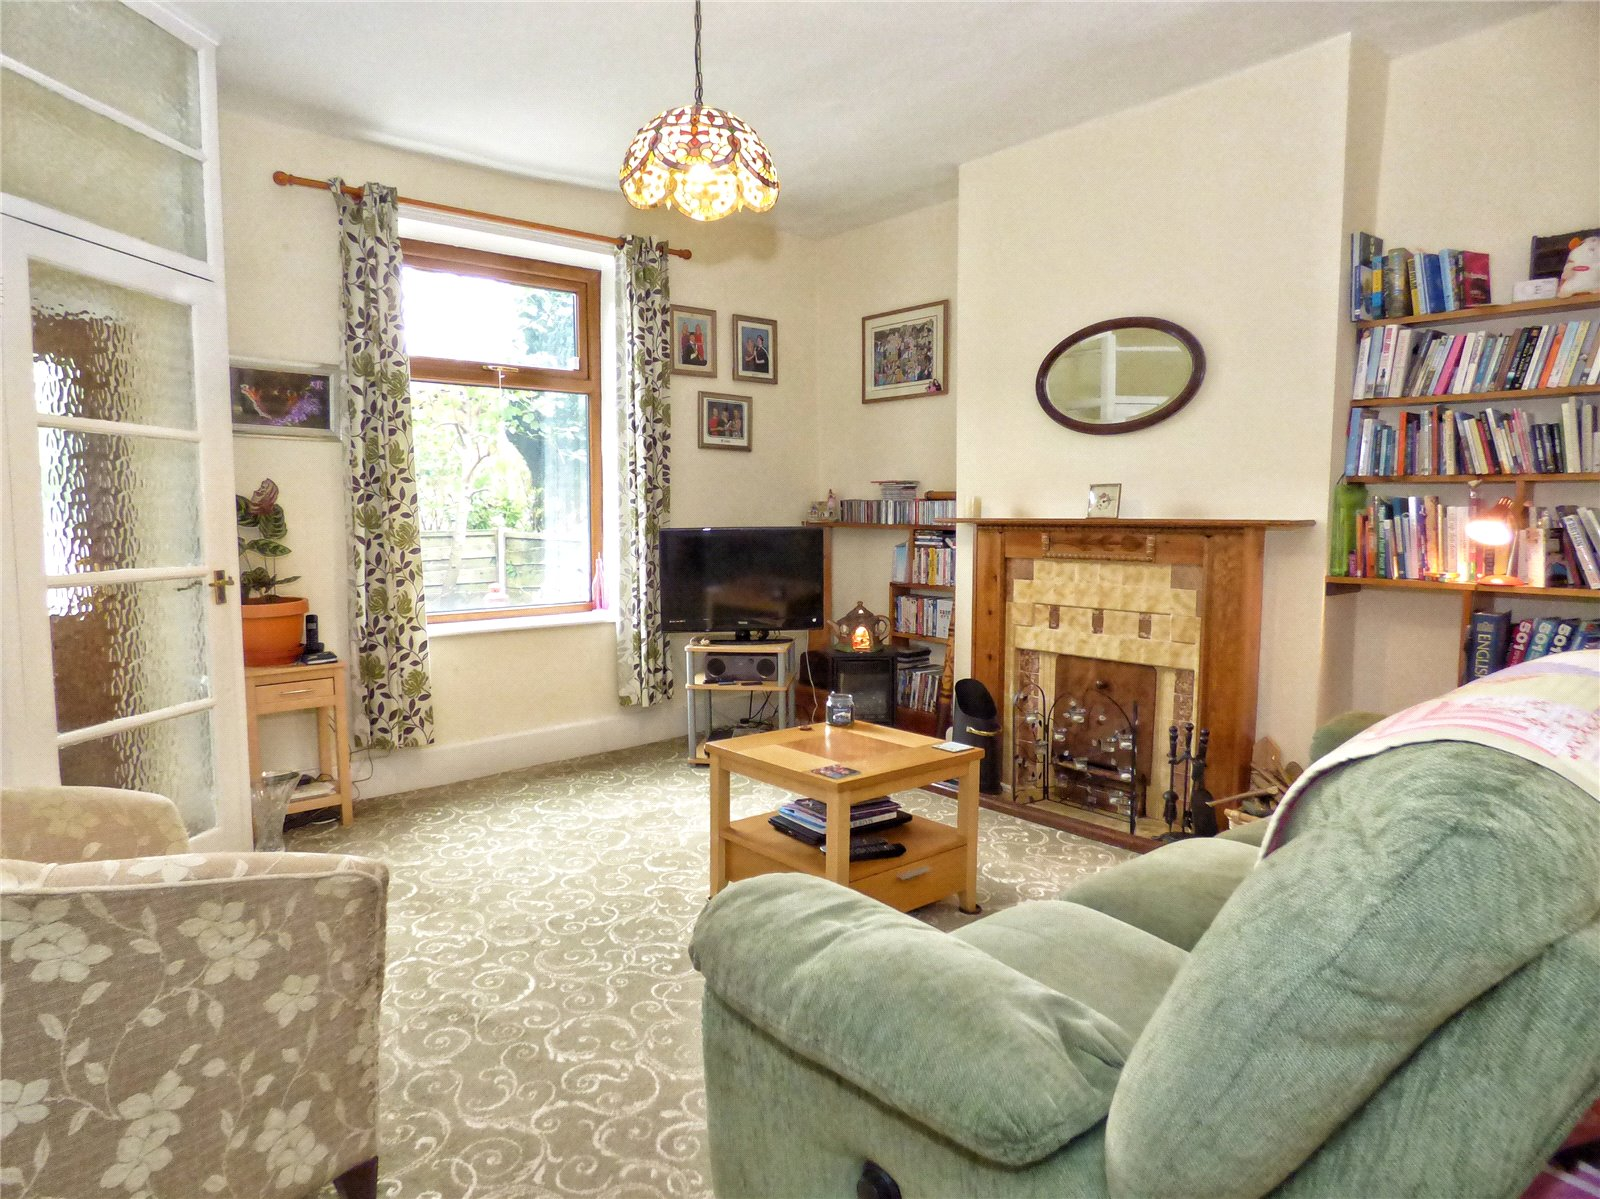 3 Bedrooms Terraced House for sale in Albert Street, Whitewell Bottom, Rossendale, Lancashire, BB4